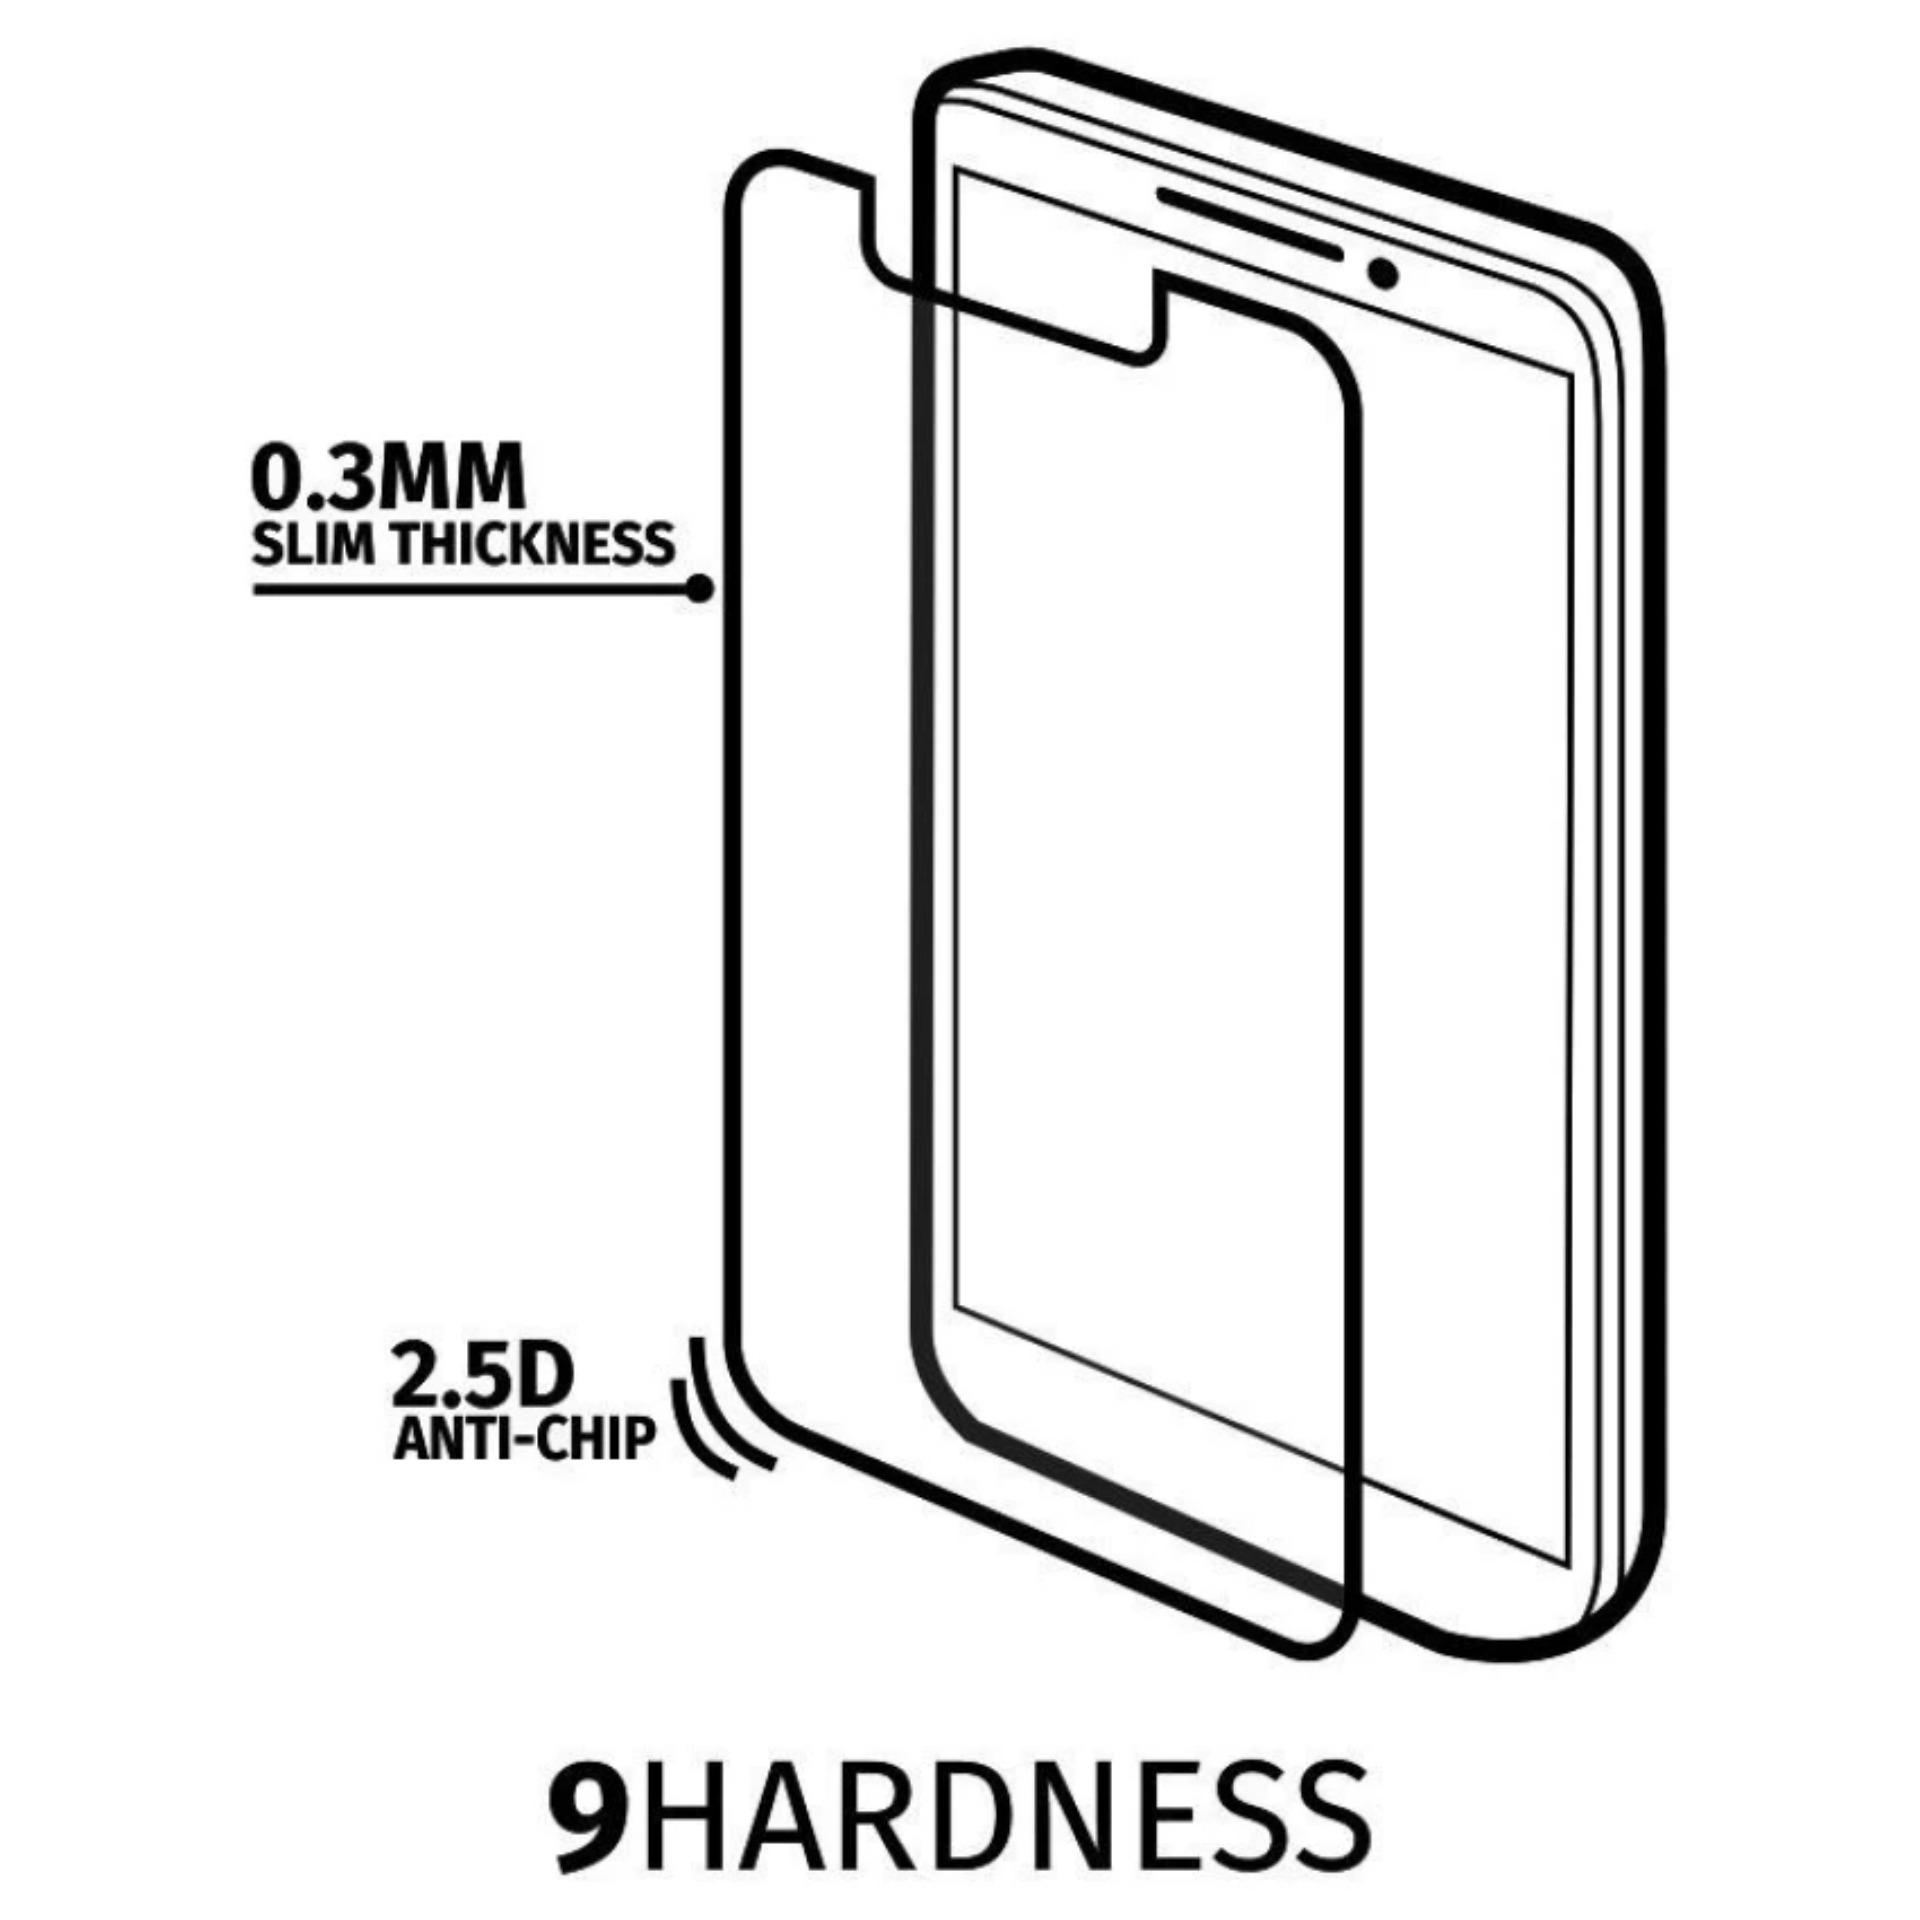 Tempered Glass For Sony Xperia M2 550h Round Edge 25d Clear Daftar Temperred Kaca Anti Gores Lenovo Zuk 2 Pro Premium